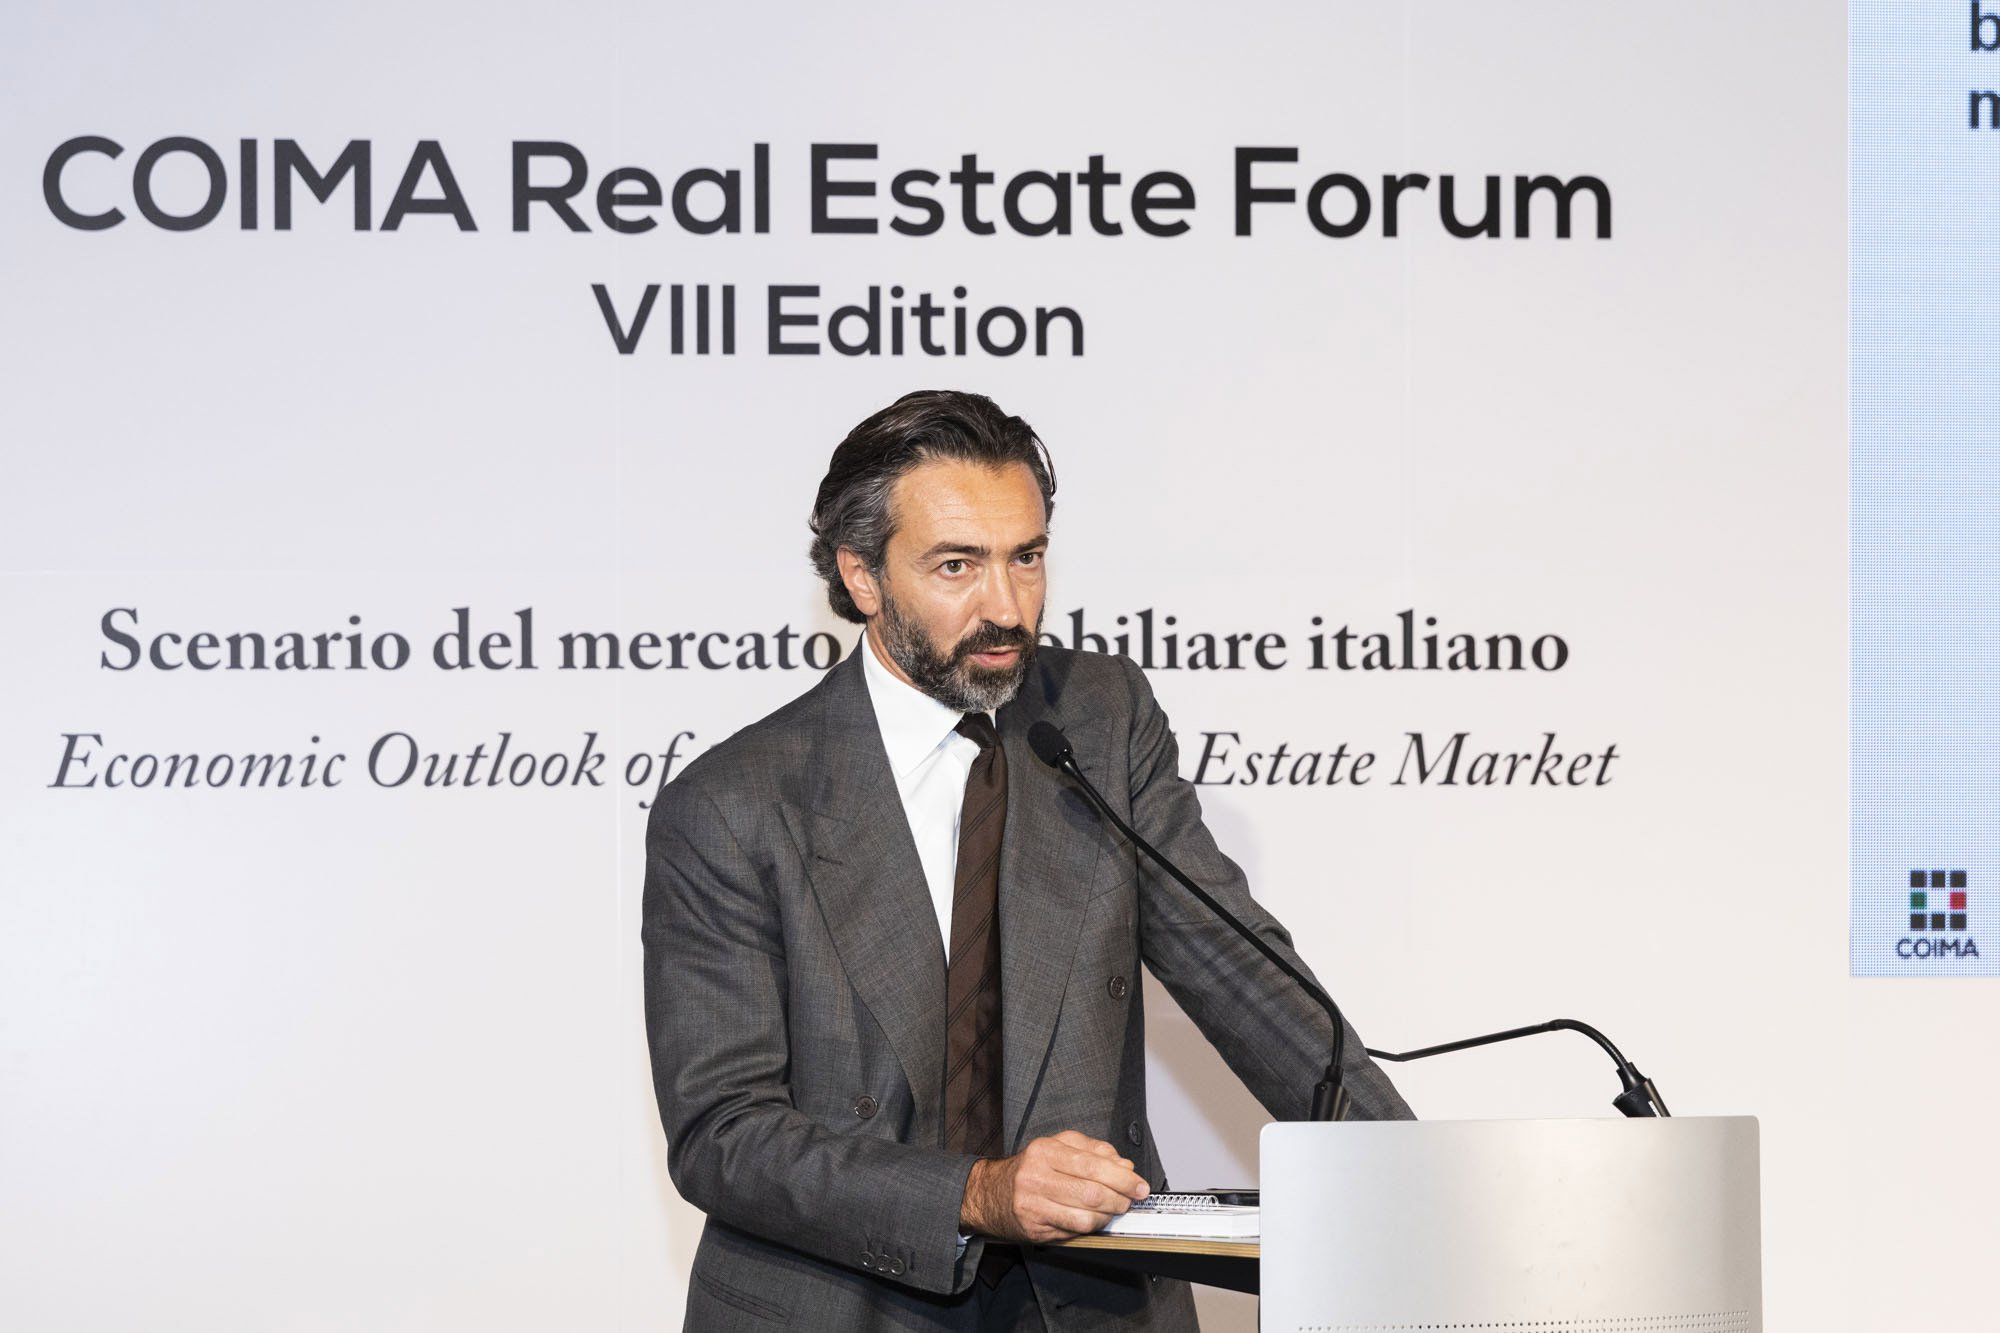 Coima Real Estate Forum 2019